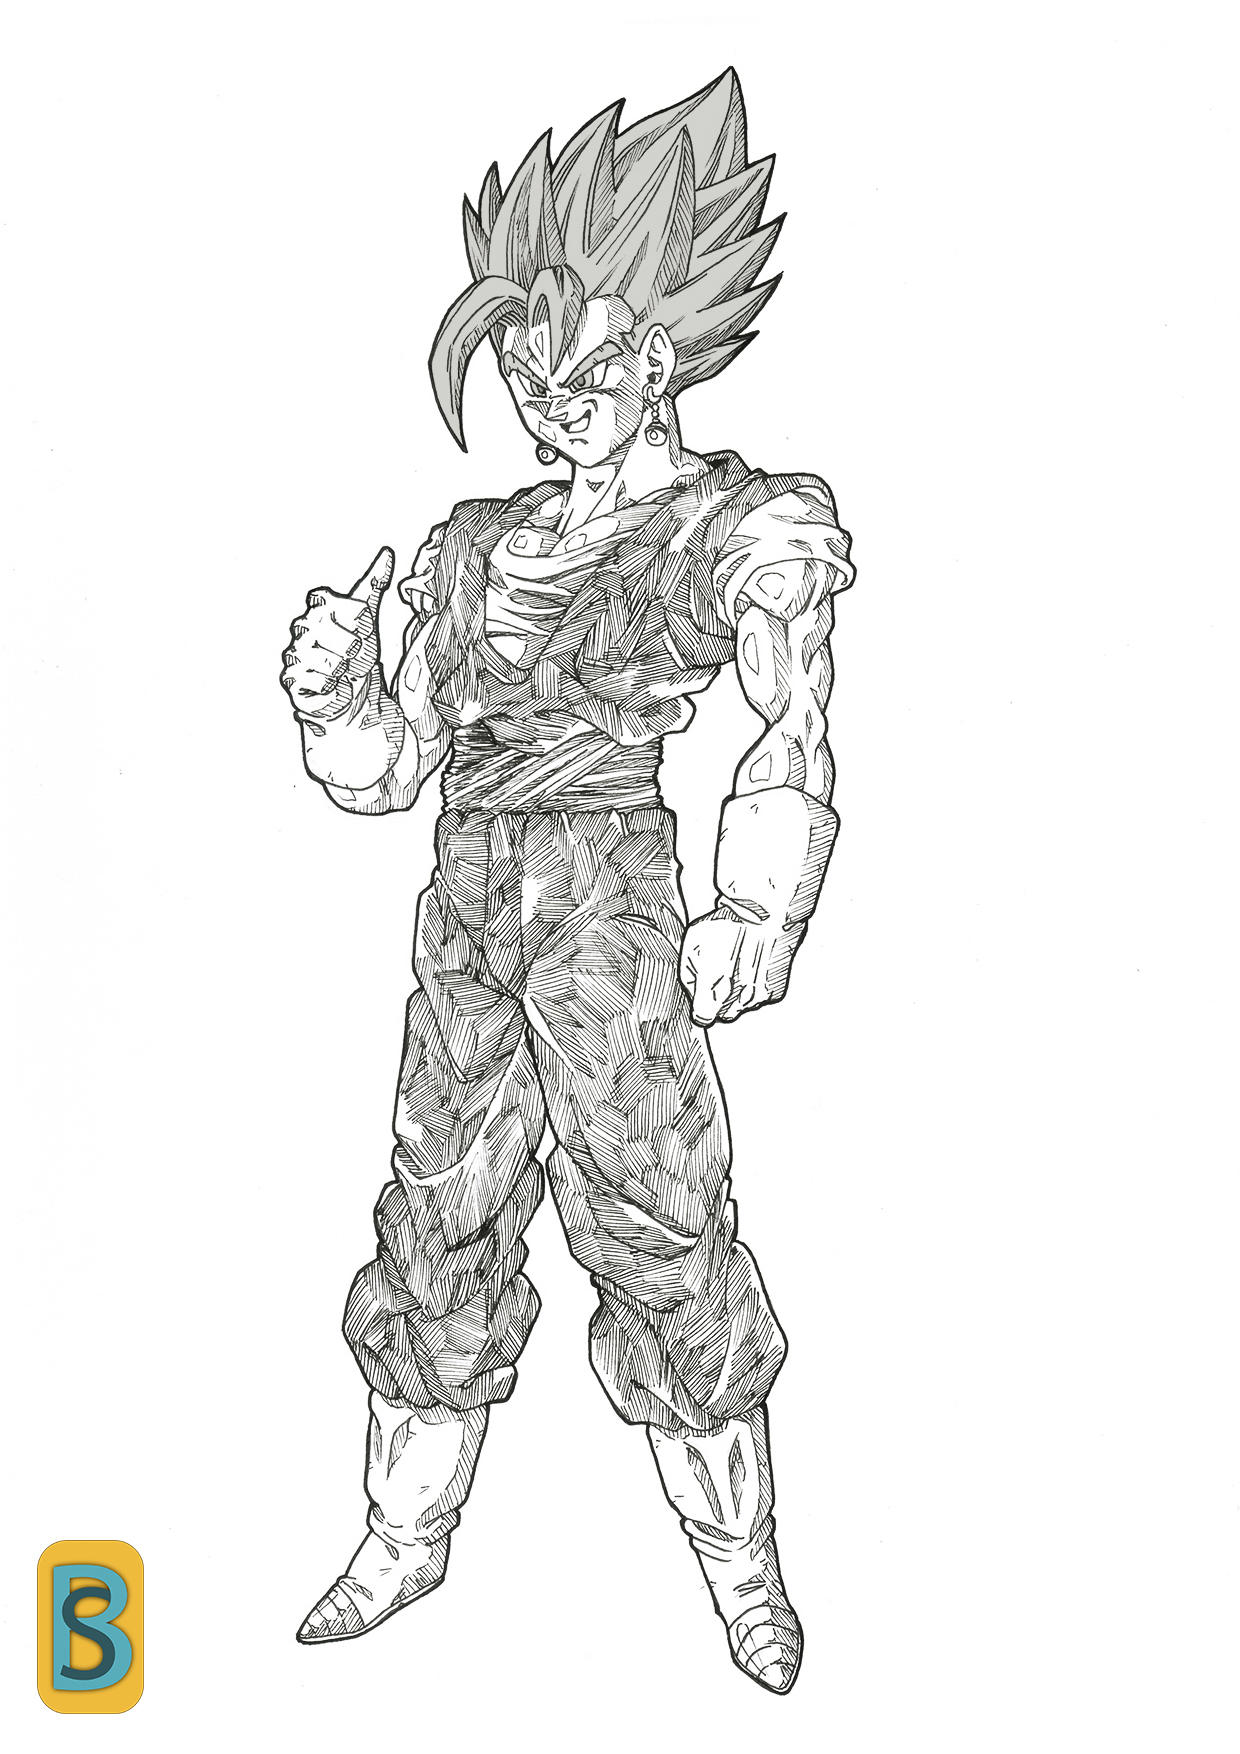 How To Draw Vegeta Easy Step by Step Drawing Guide by